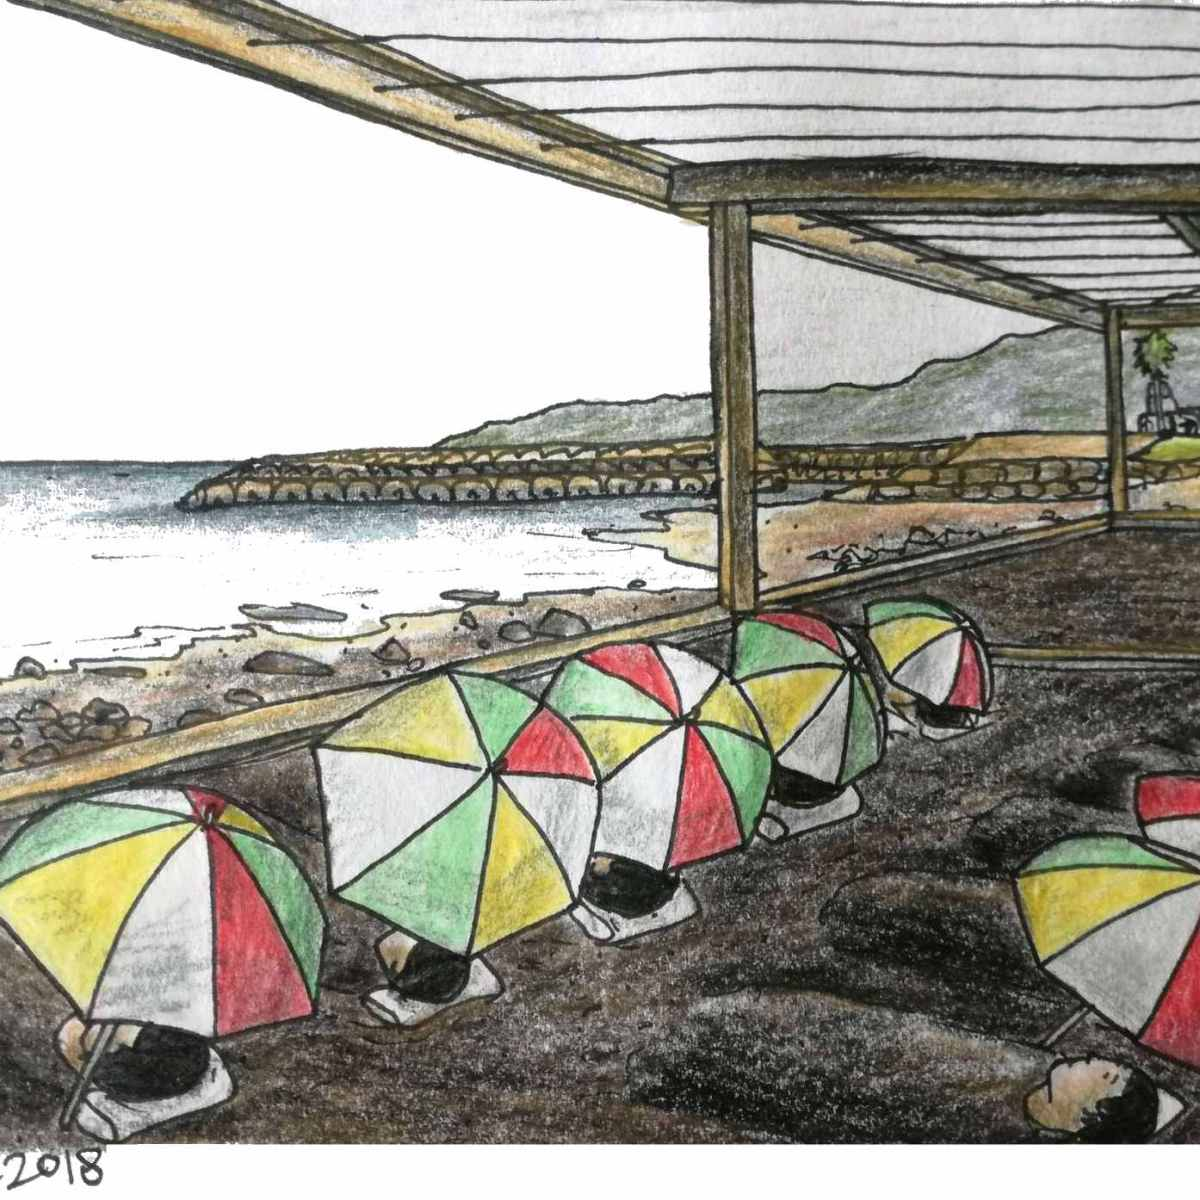 Drawing of beppu sand bathers buried in volcanic sand